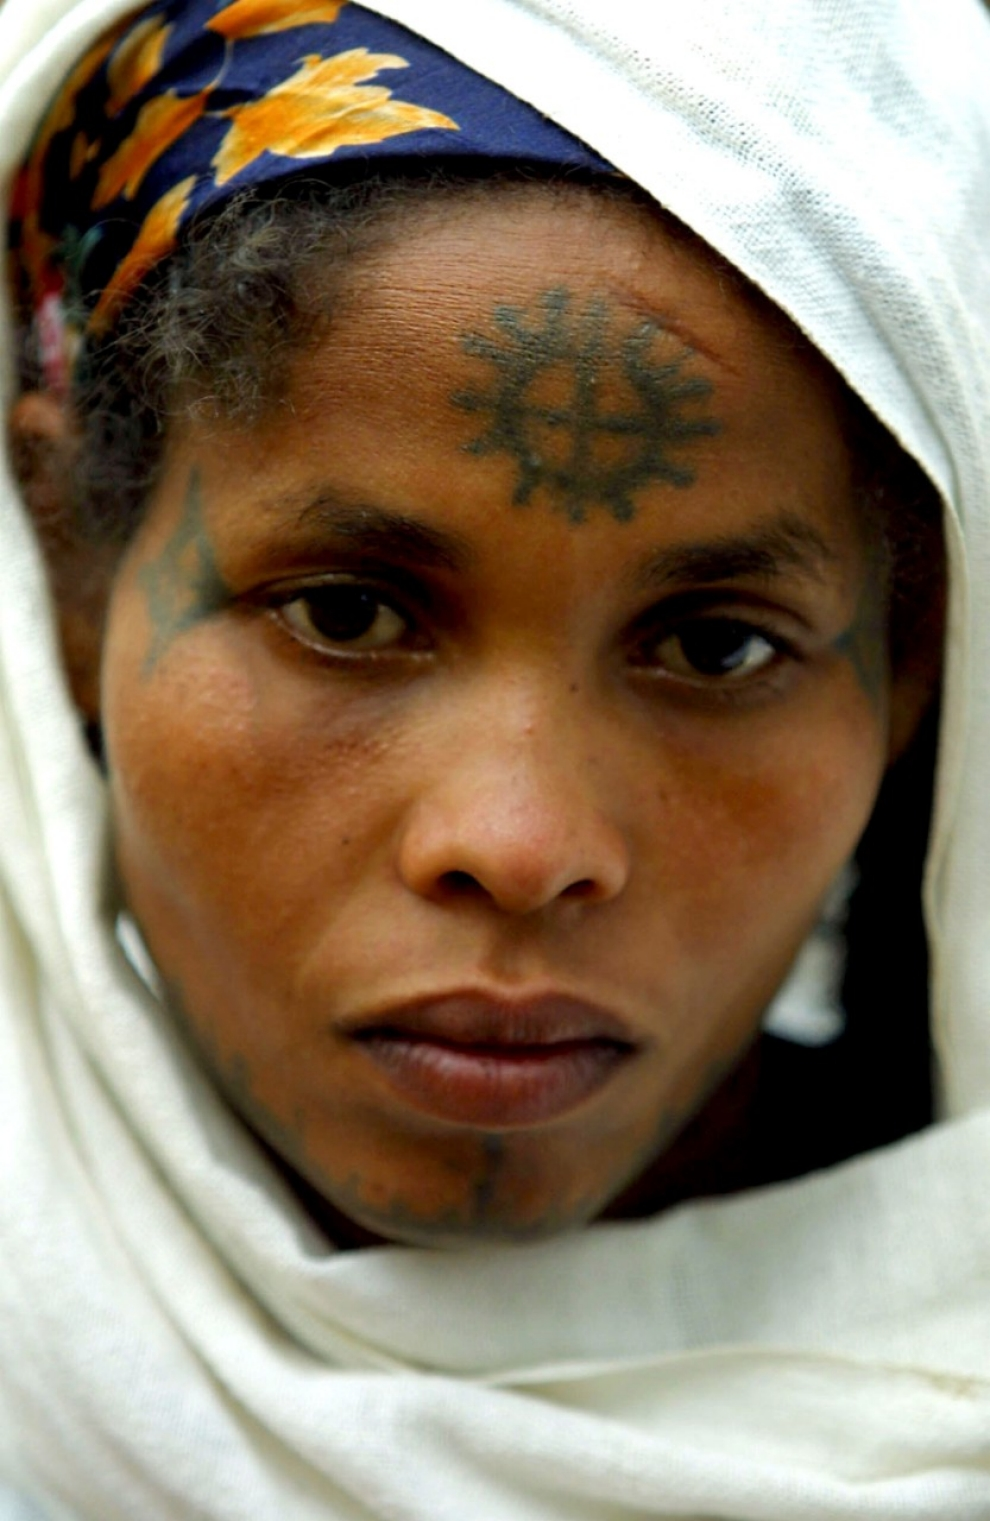 A Jewish Ethiopian woman with a cross tattooed on her forehead poses for a portrait on March 14, 2003 at the Beta Israel School in Addis Ababa, Ethiopia.